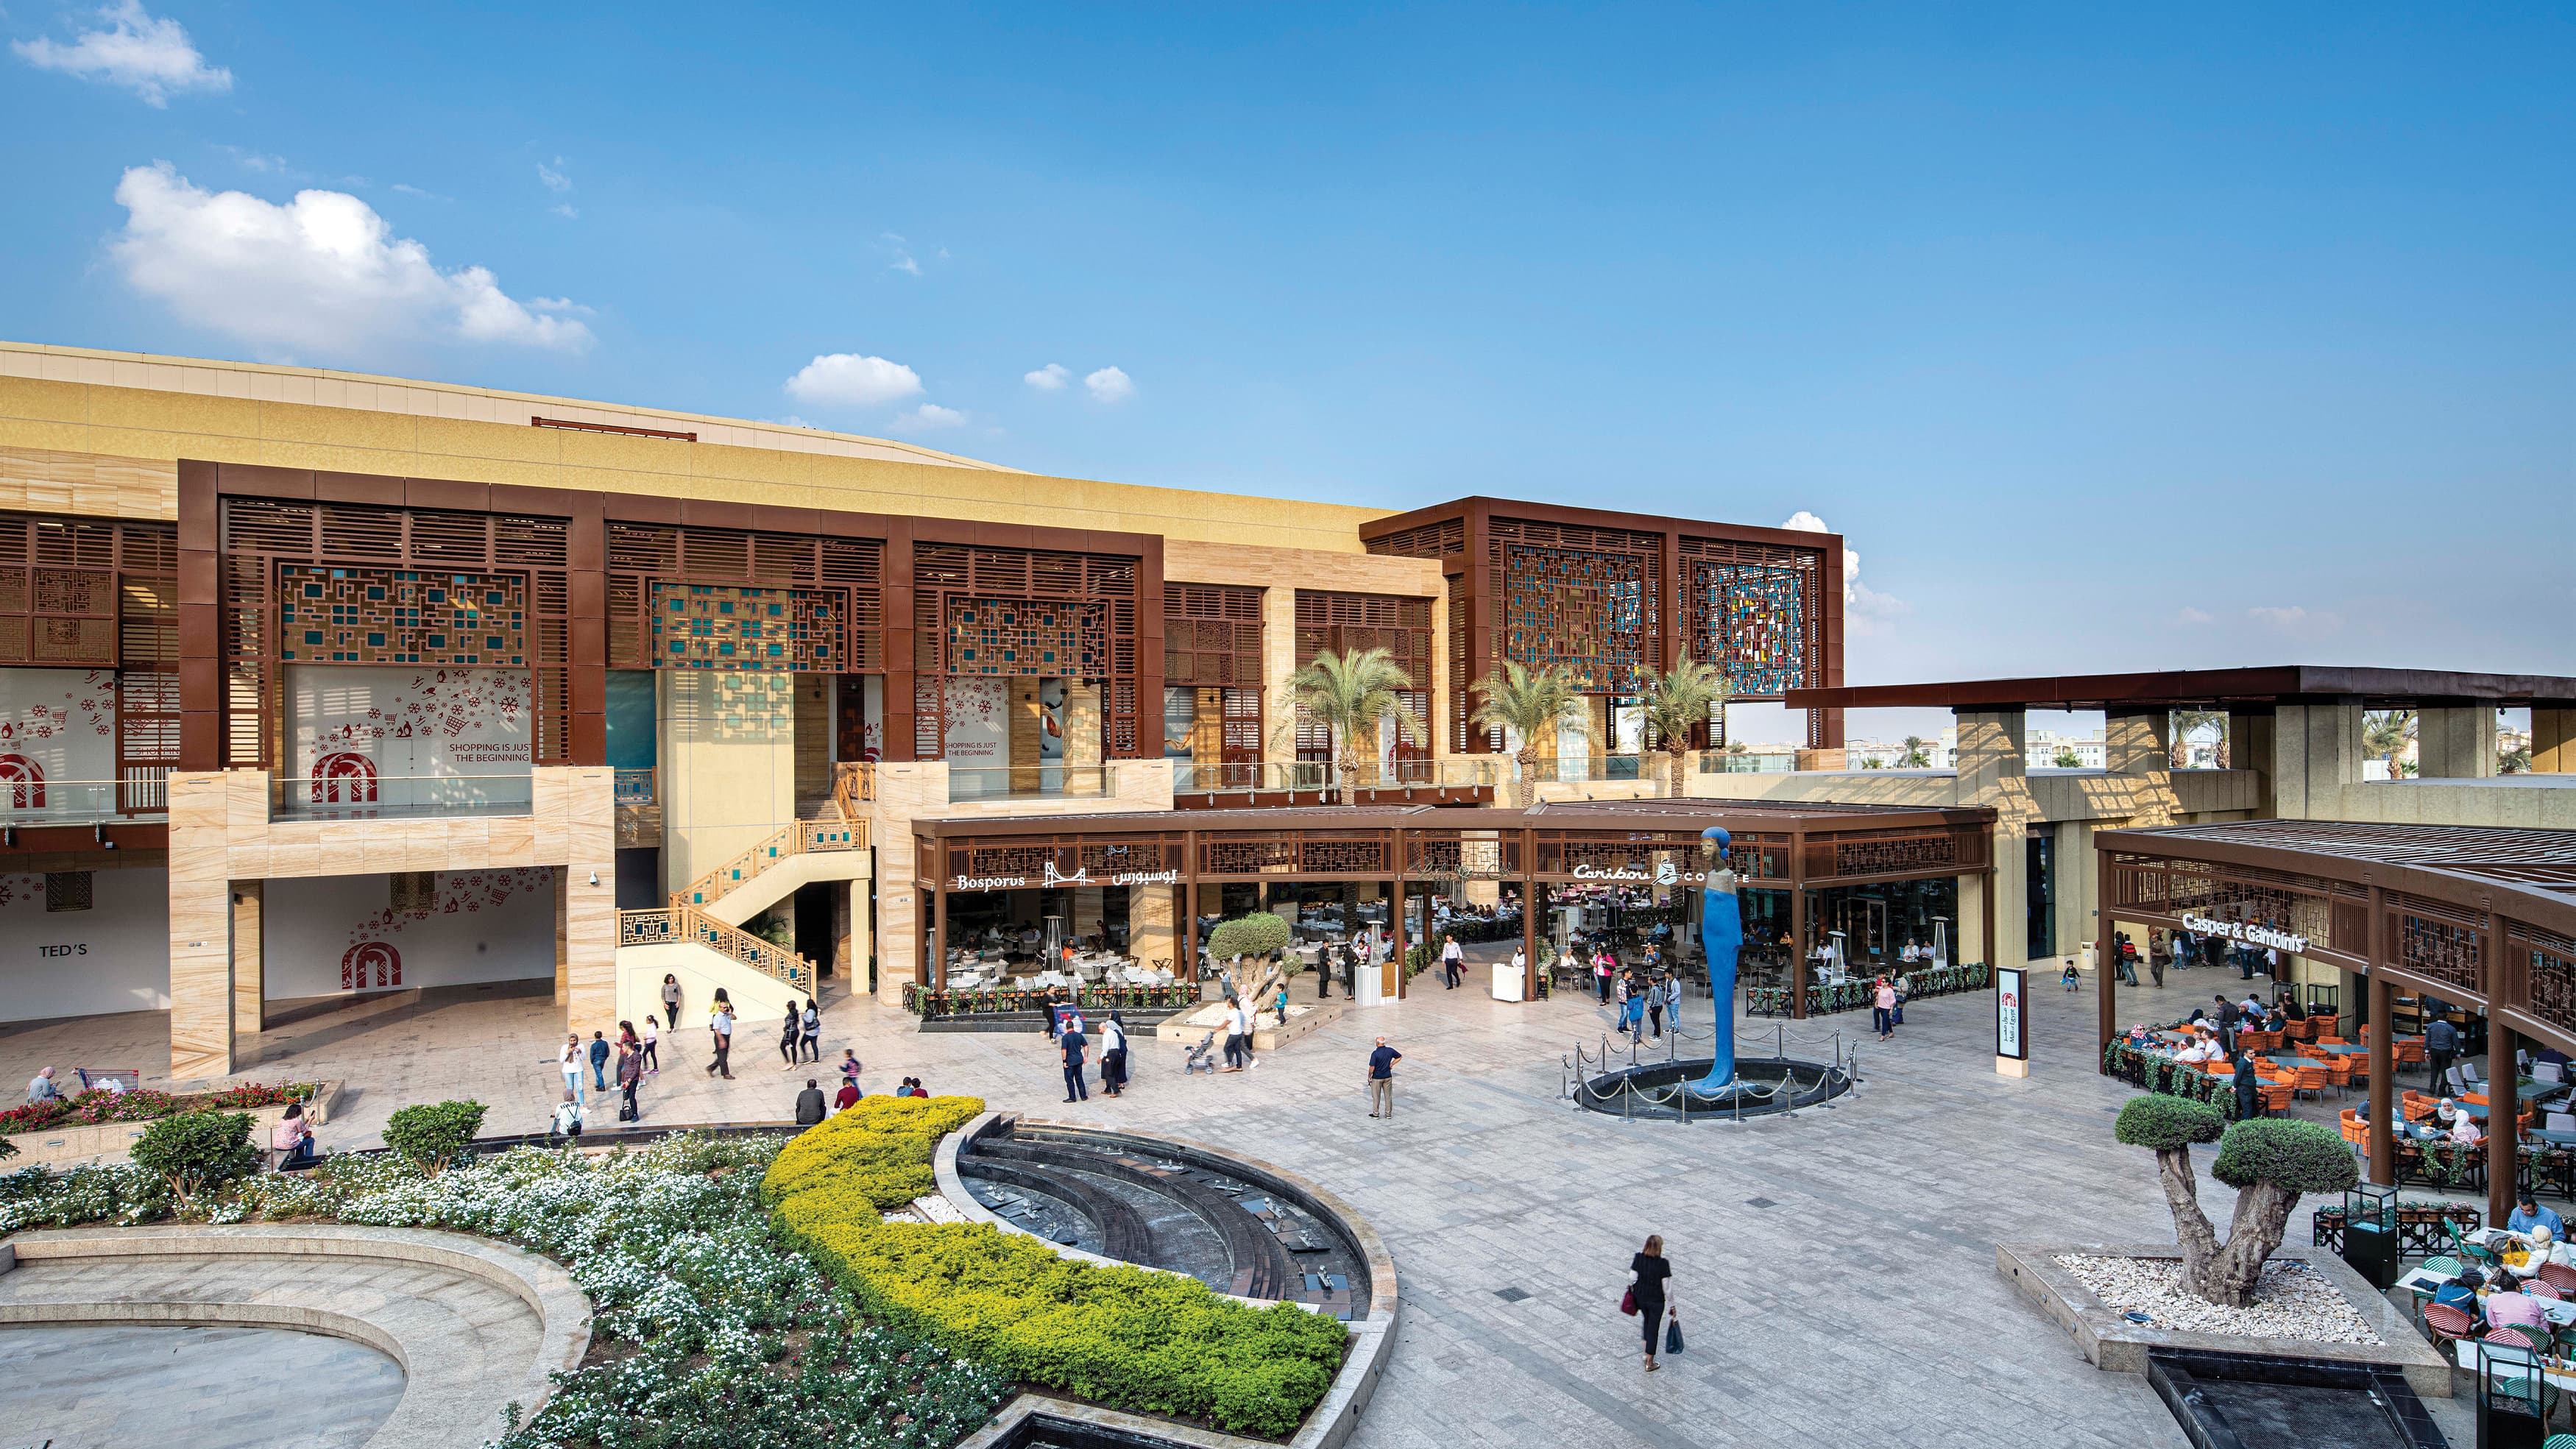 Overhead view of Mall of Egypt's outdoor retail center with monument sign